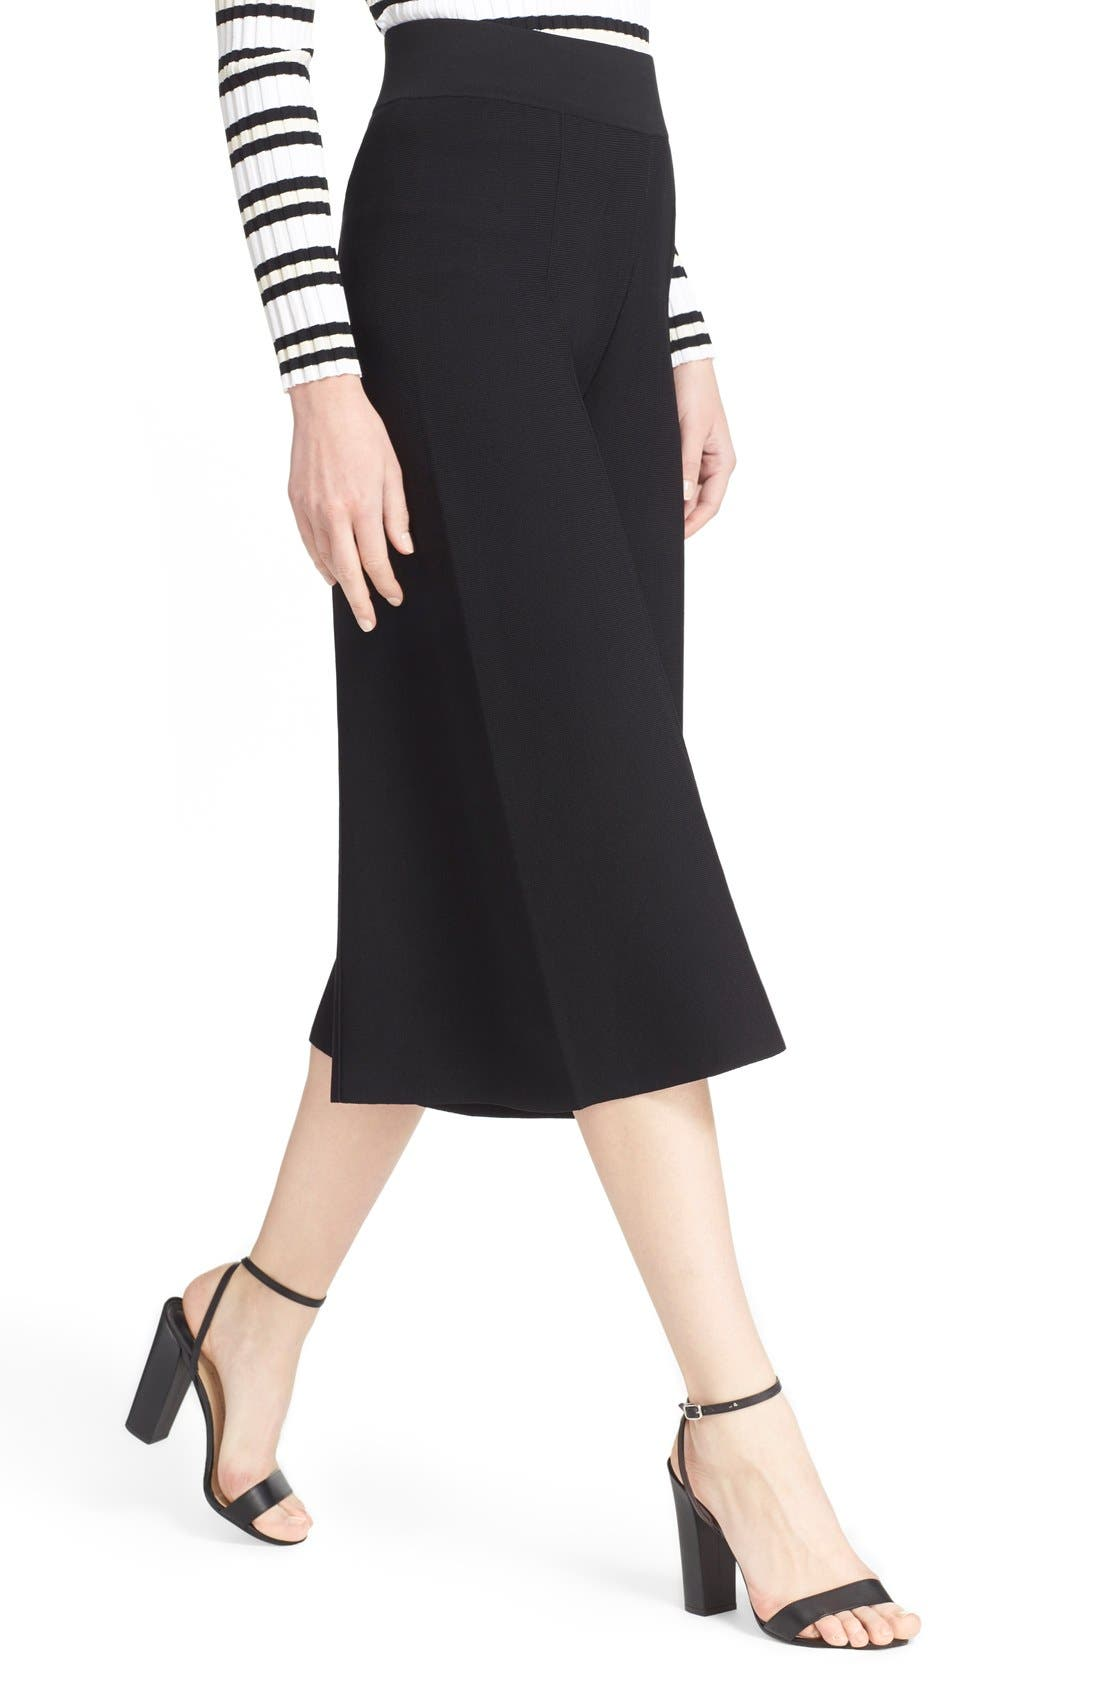 MILLY, Knit Culottes, Alternate thumbnail 2, color, 001